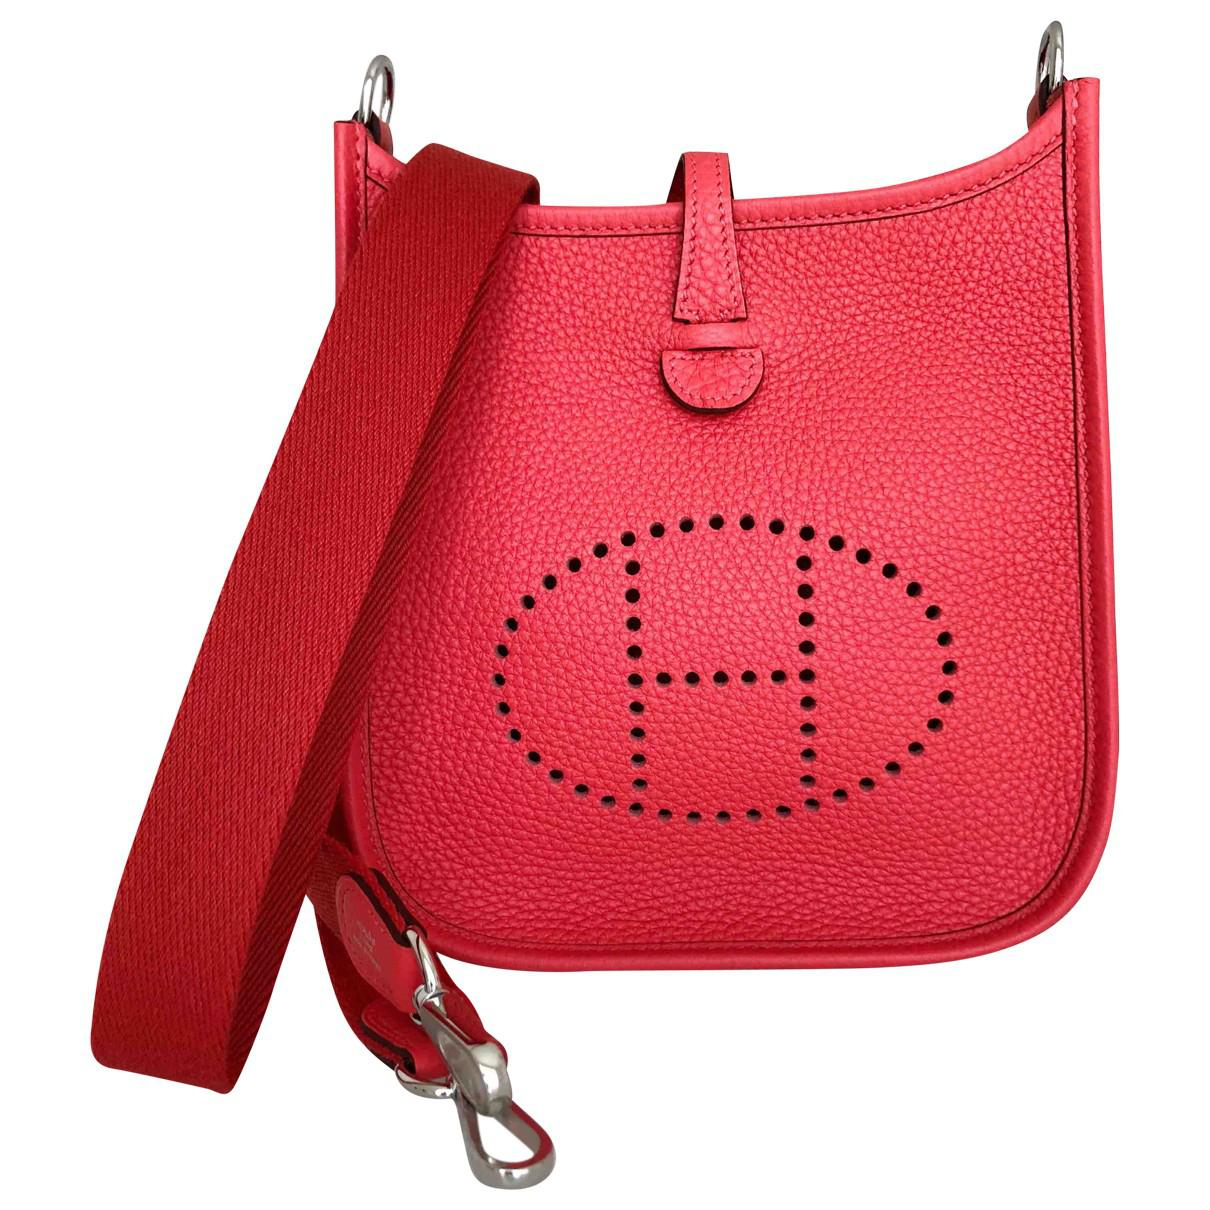 ede06628fba0 Lyst - Hermès Evelyne Leather Crossbody Bag in Red